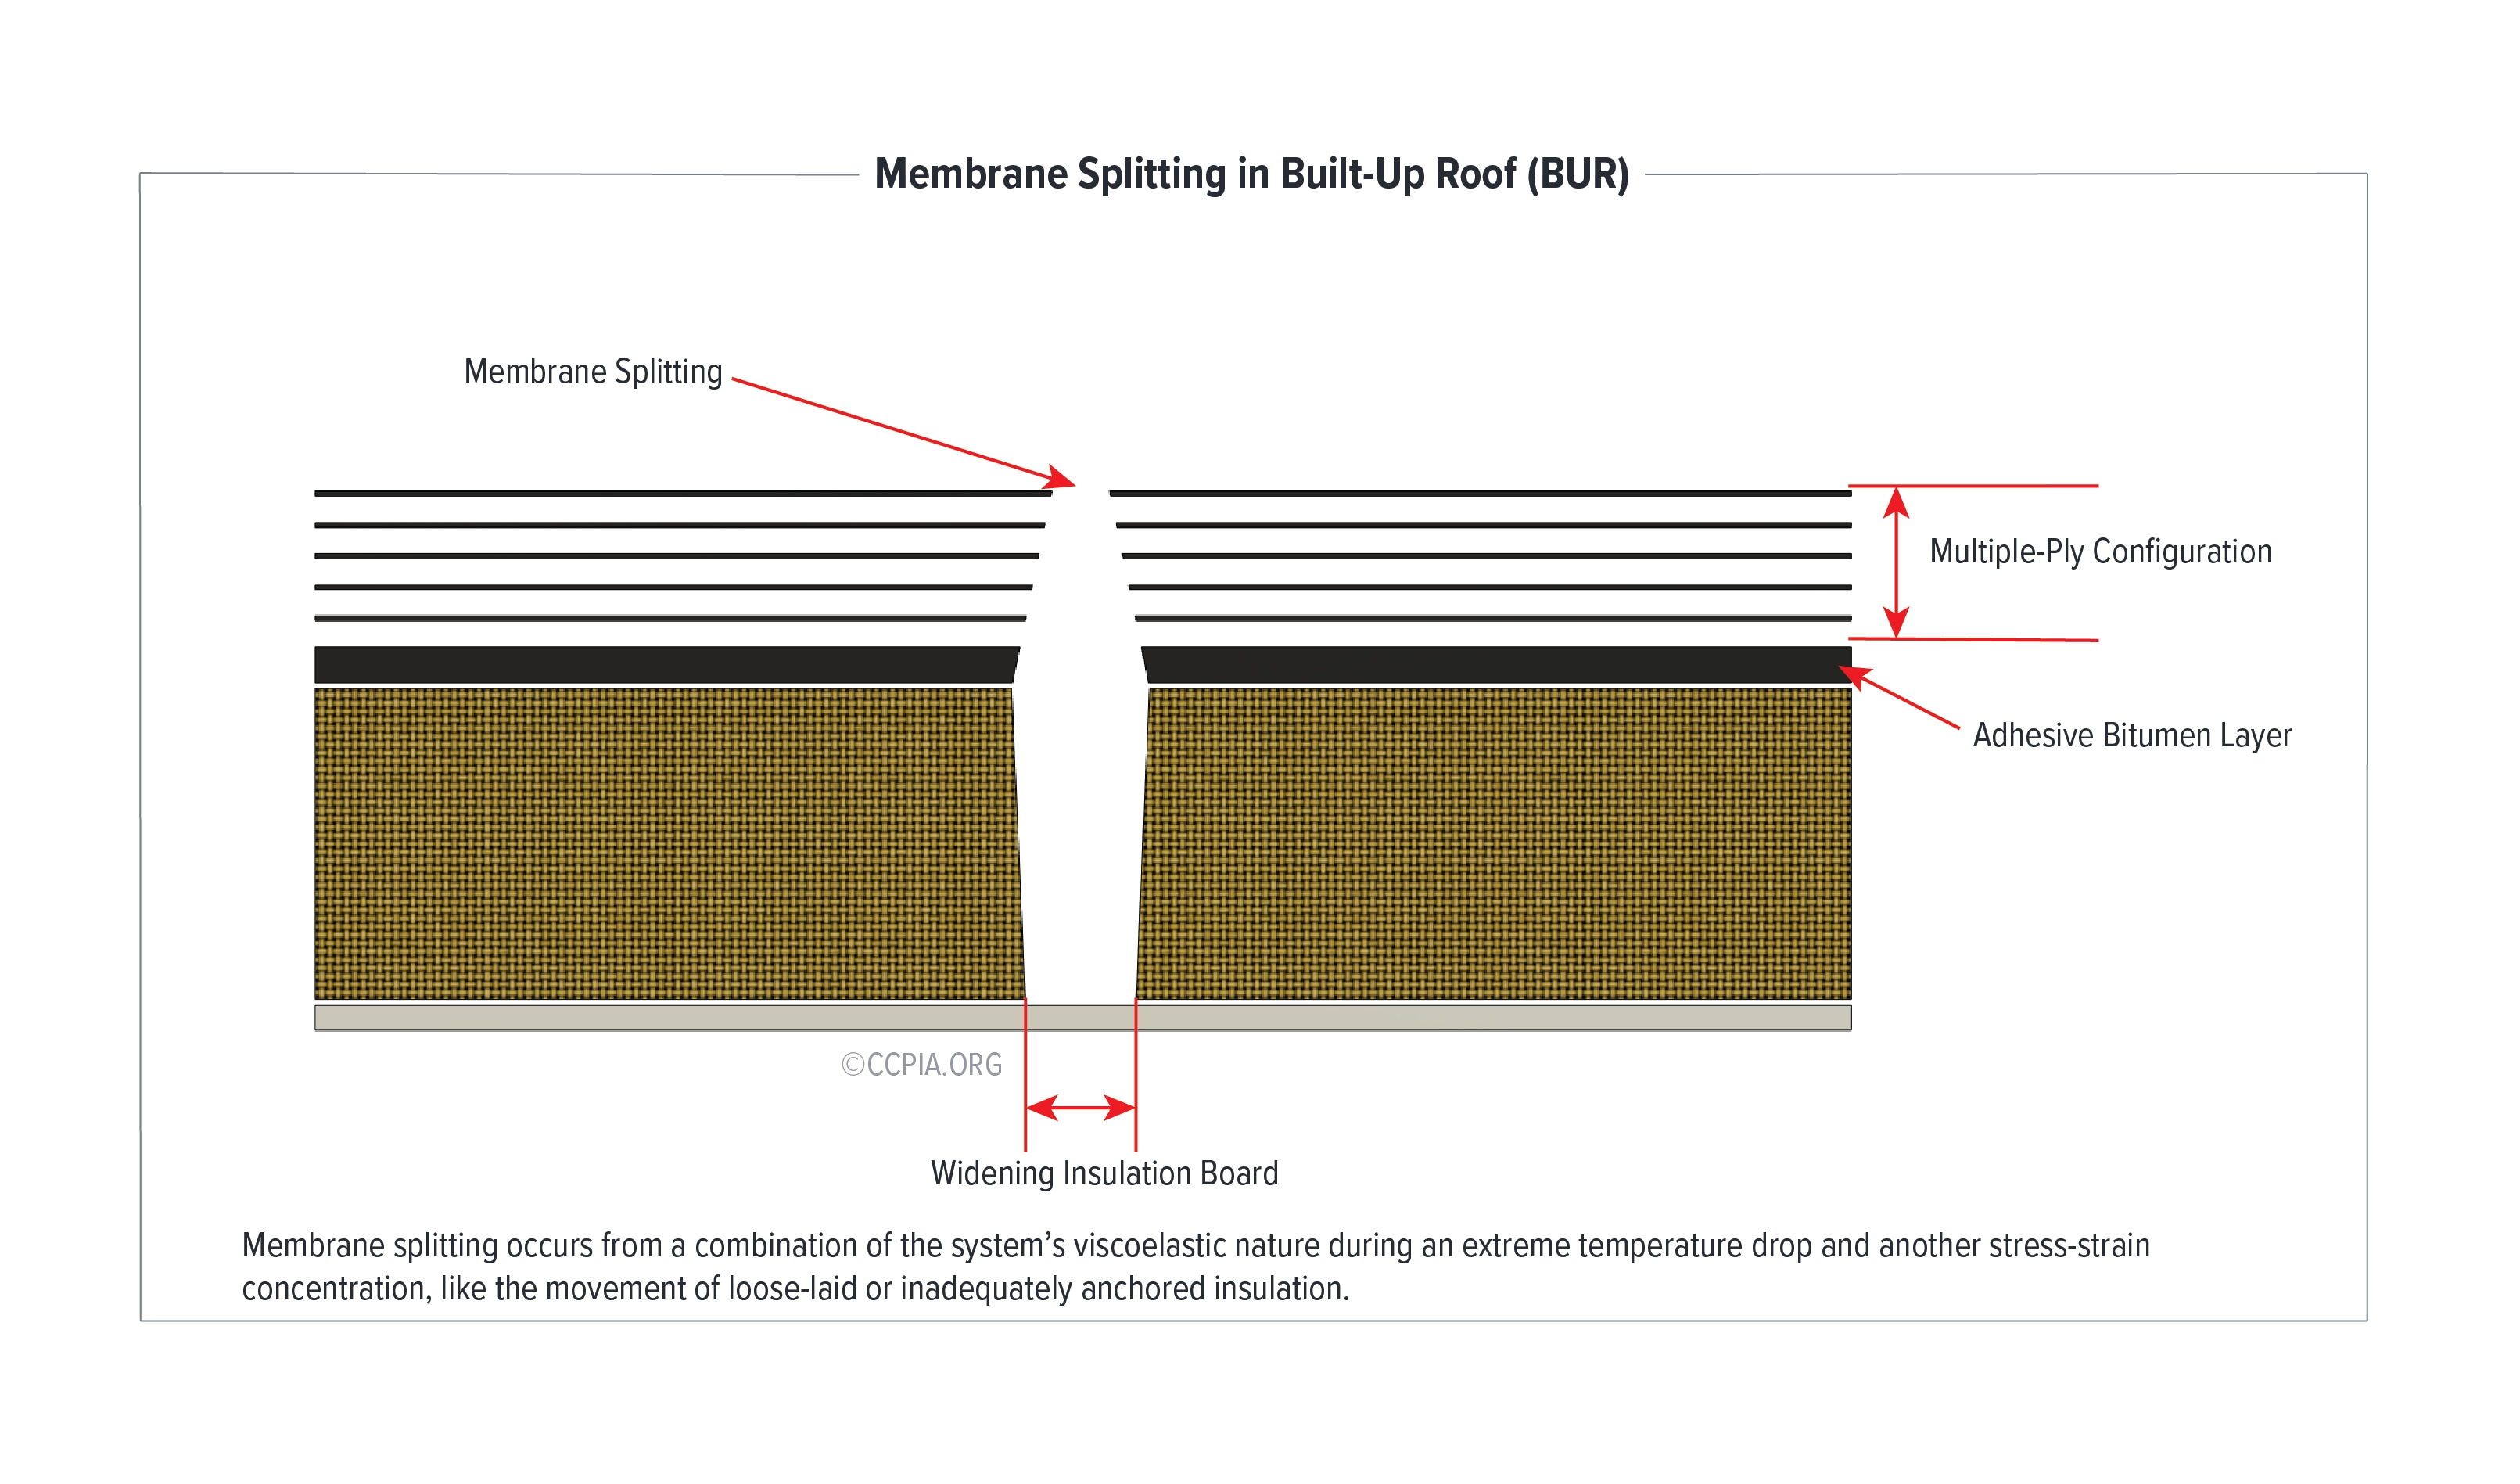 Membrane Splitting in Built-Up Roof (BUR): Membrane splitting occurs from a combination of the system's viscoelastic nature during an extreme temperature drop and another stress-strain concentration.